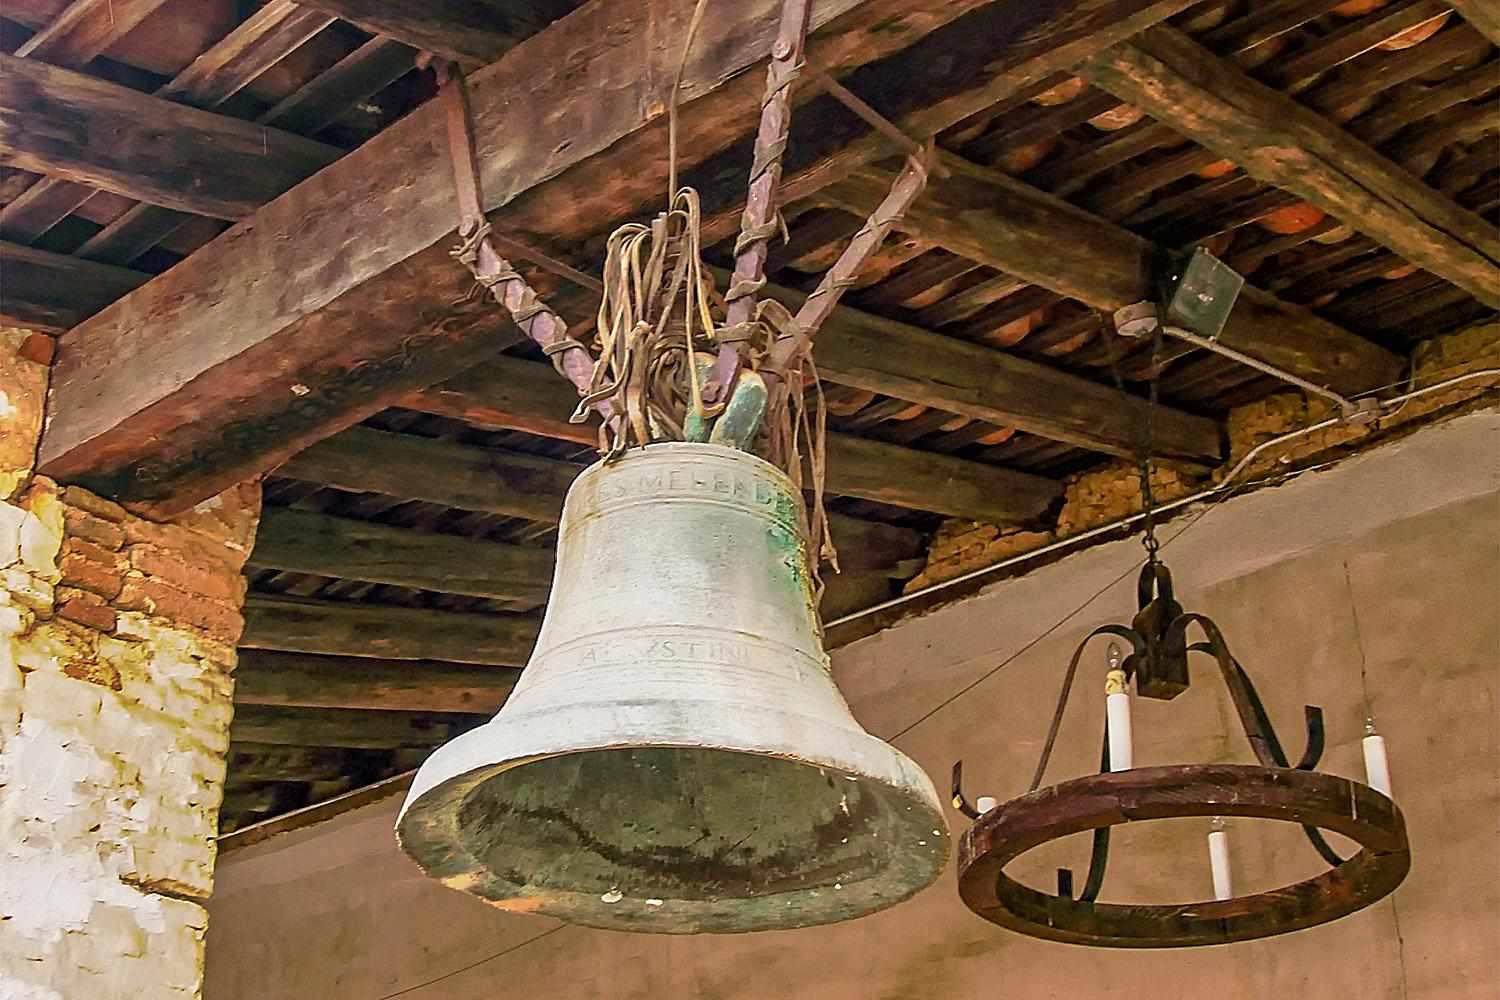 Mission Bell at San Miguel